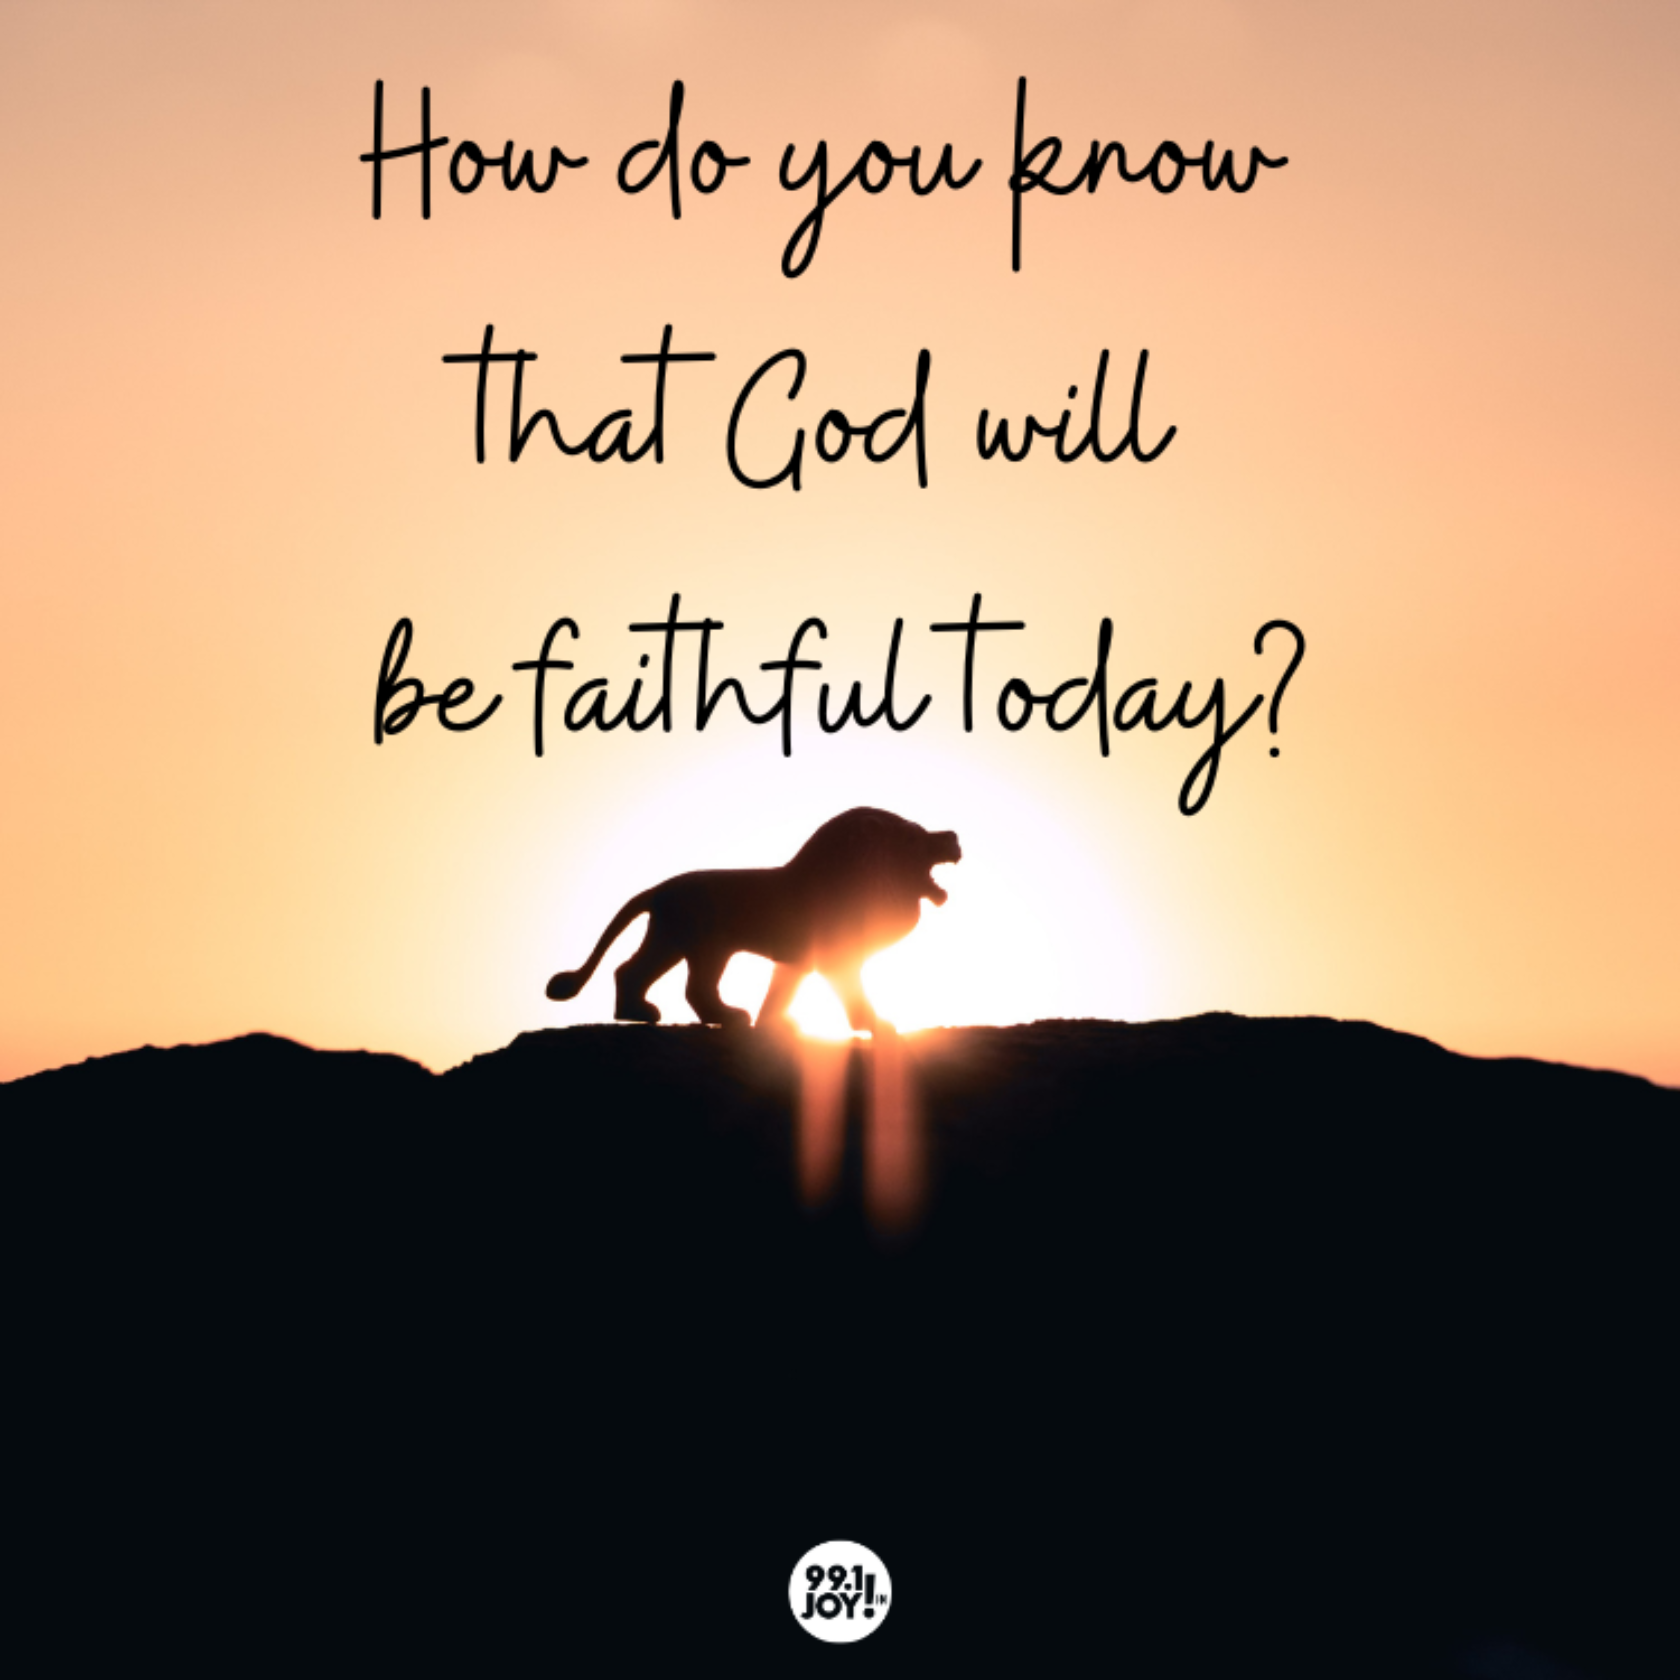 How do you know that God will be faithful today?